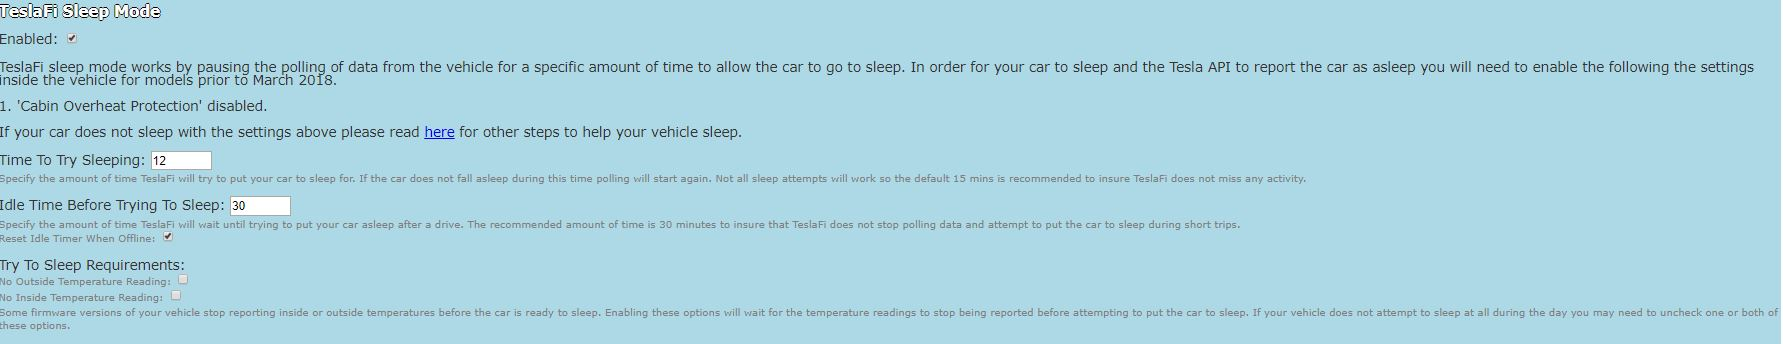 TeslaFiSleepSettings.JPG